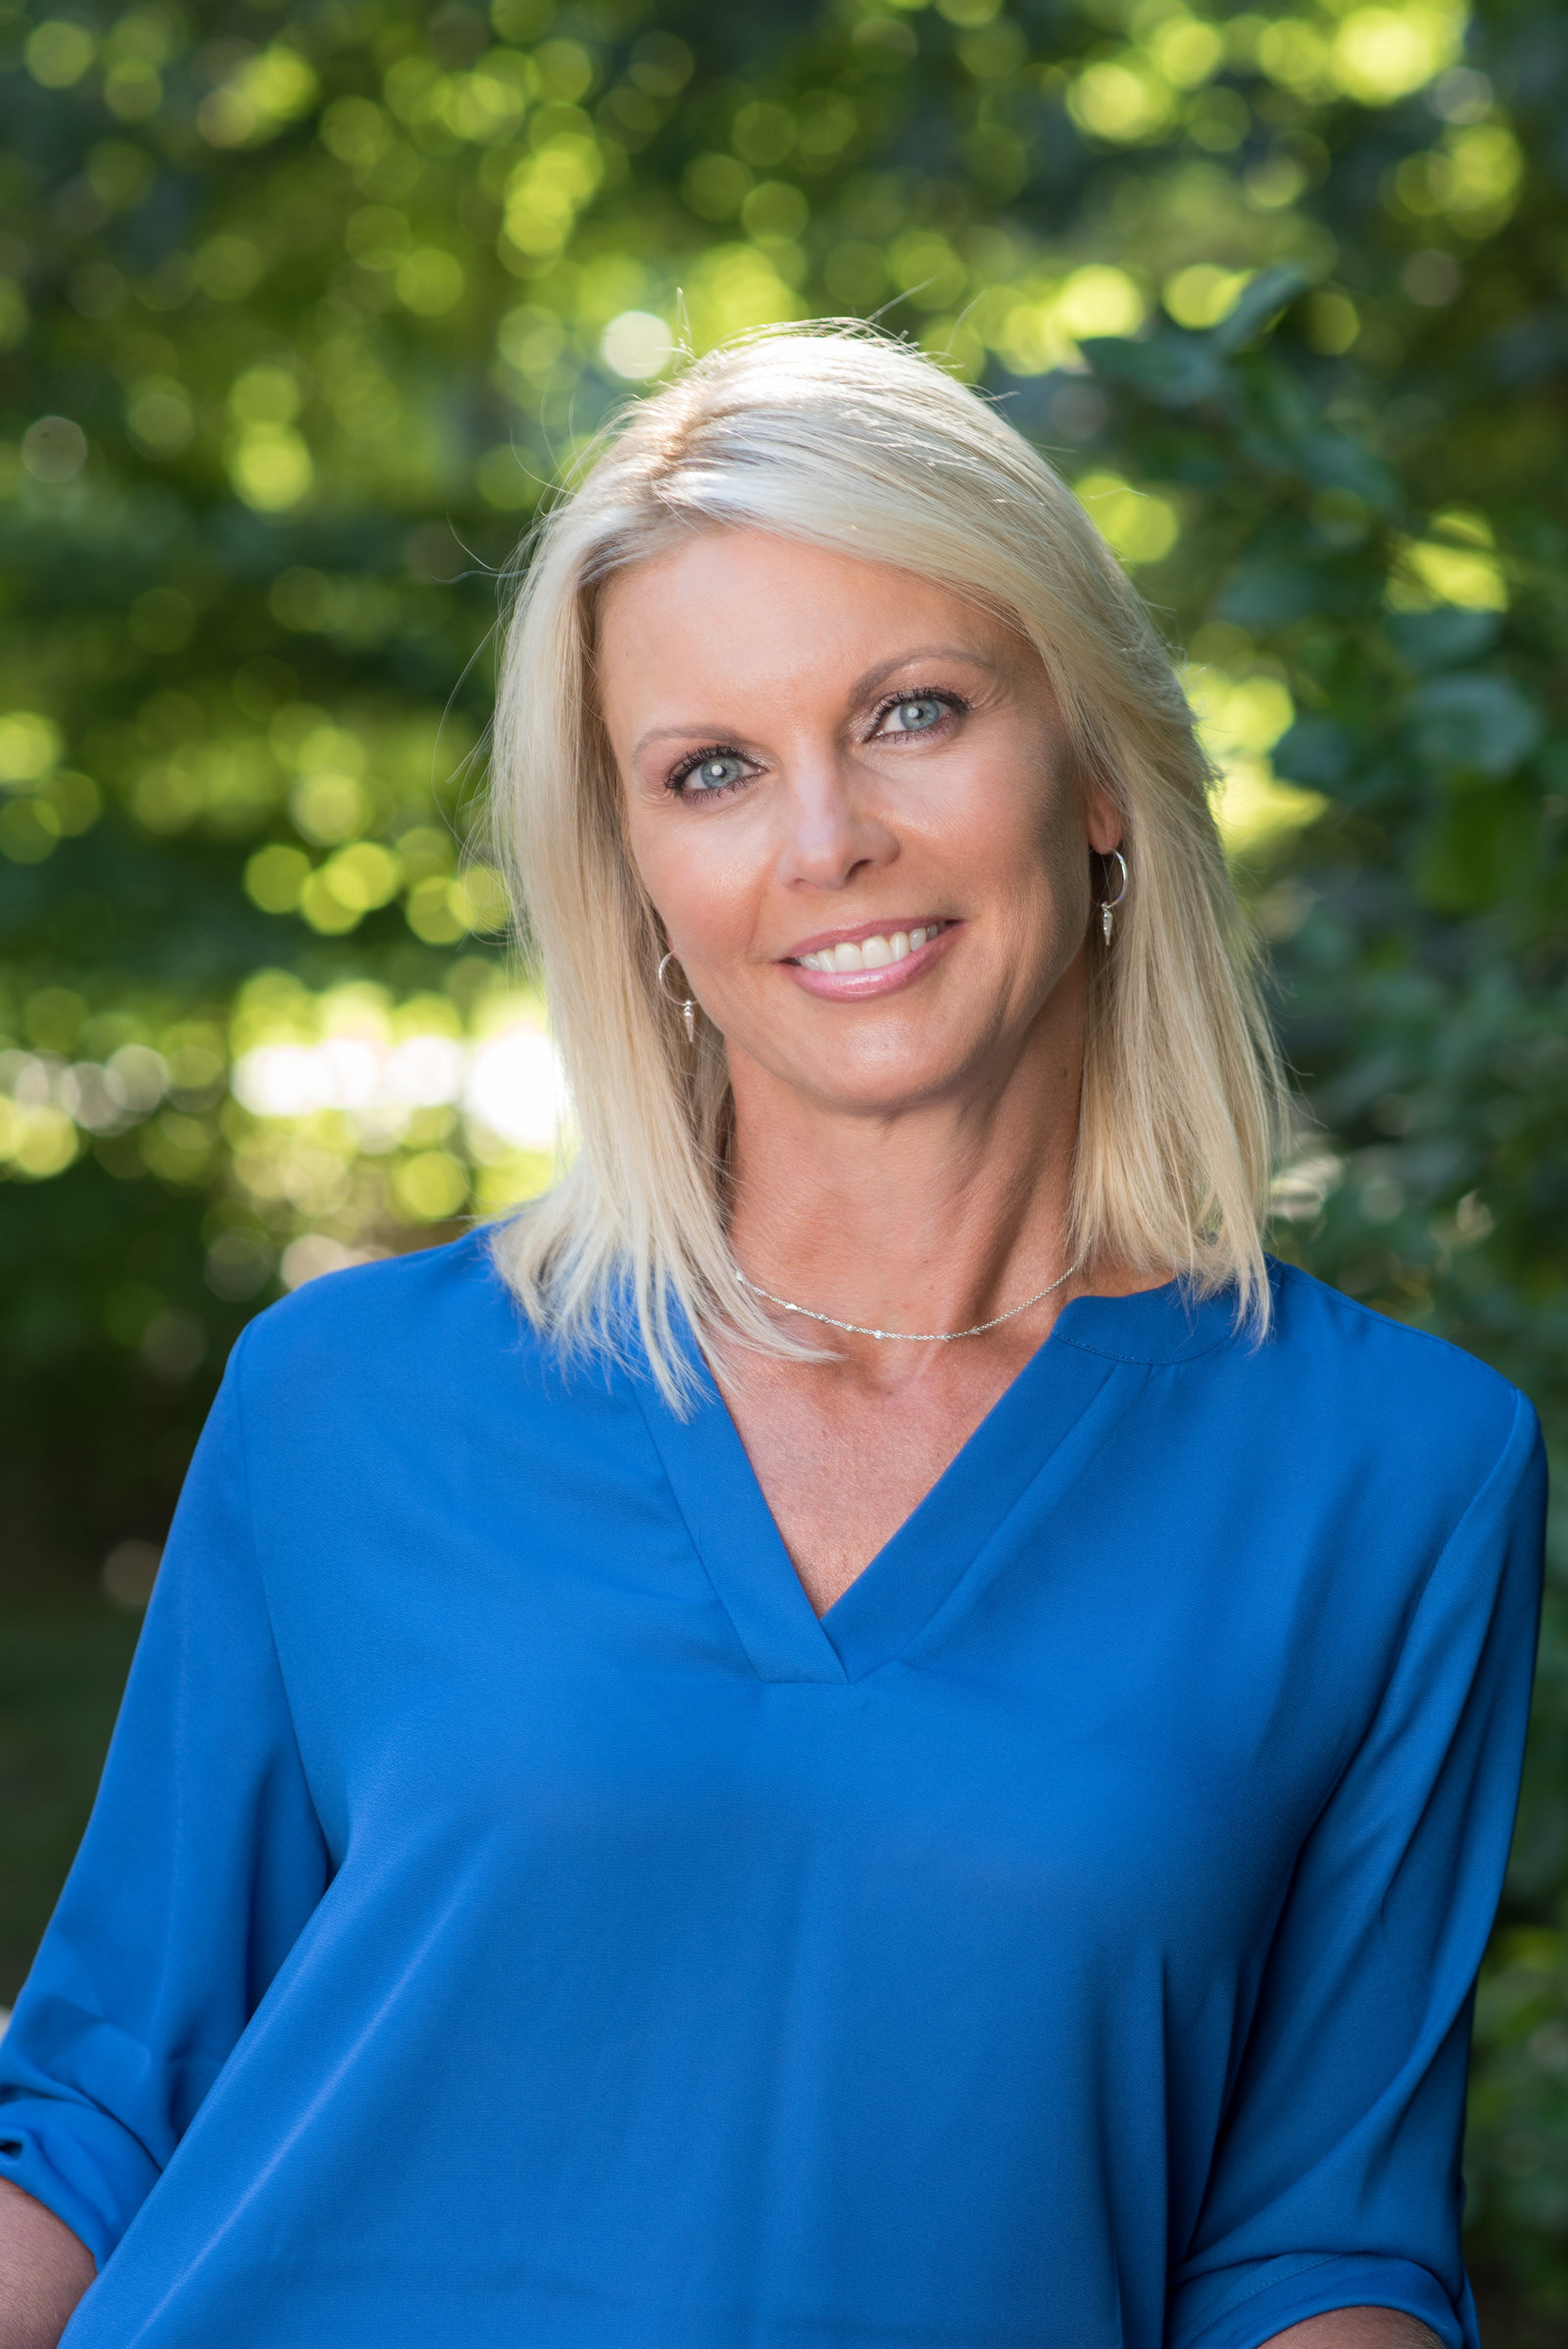 Corporate Headshot, West Chester PA Photographer, Headshot photographer, Dottie Foley Photography